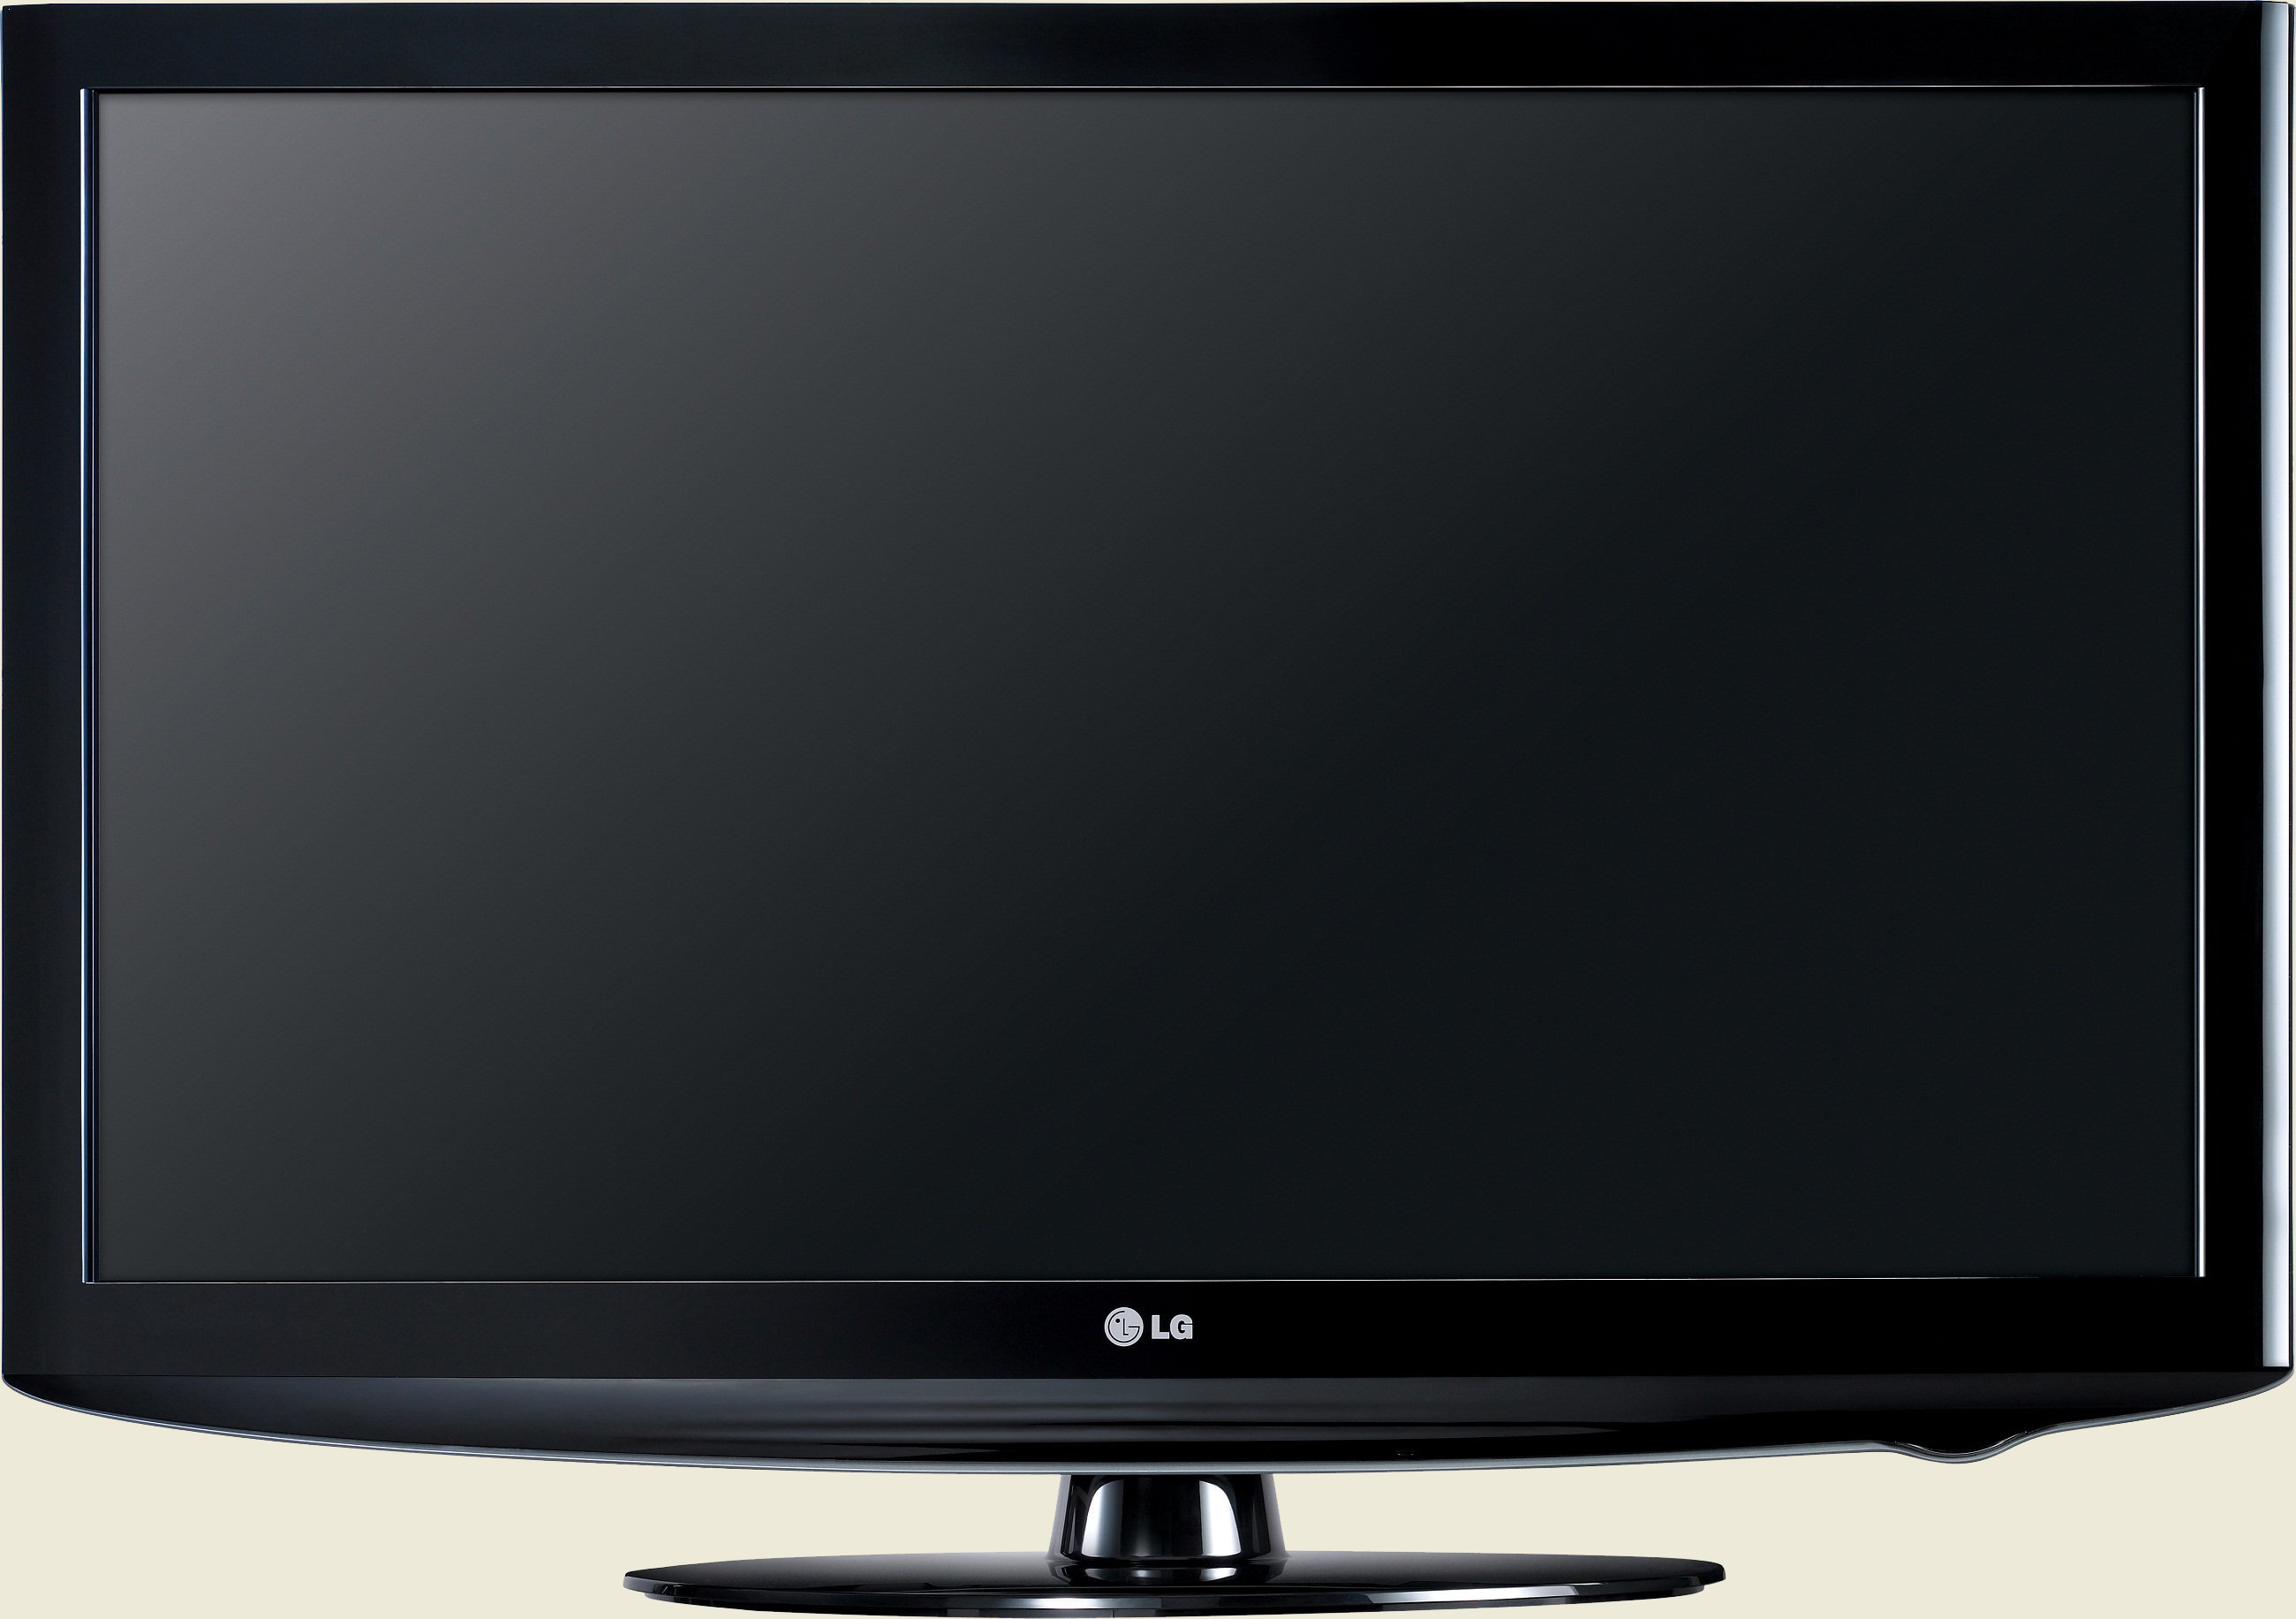 32 inch hd lcd television. Black Bedroom Furniture Sets. Home Design Ideas